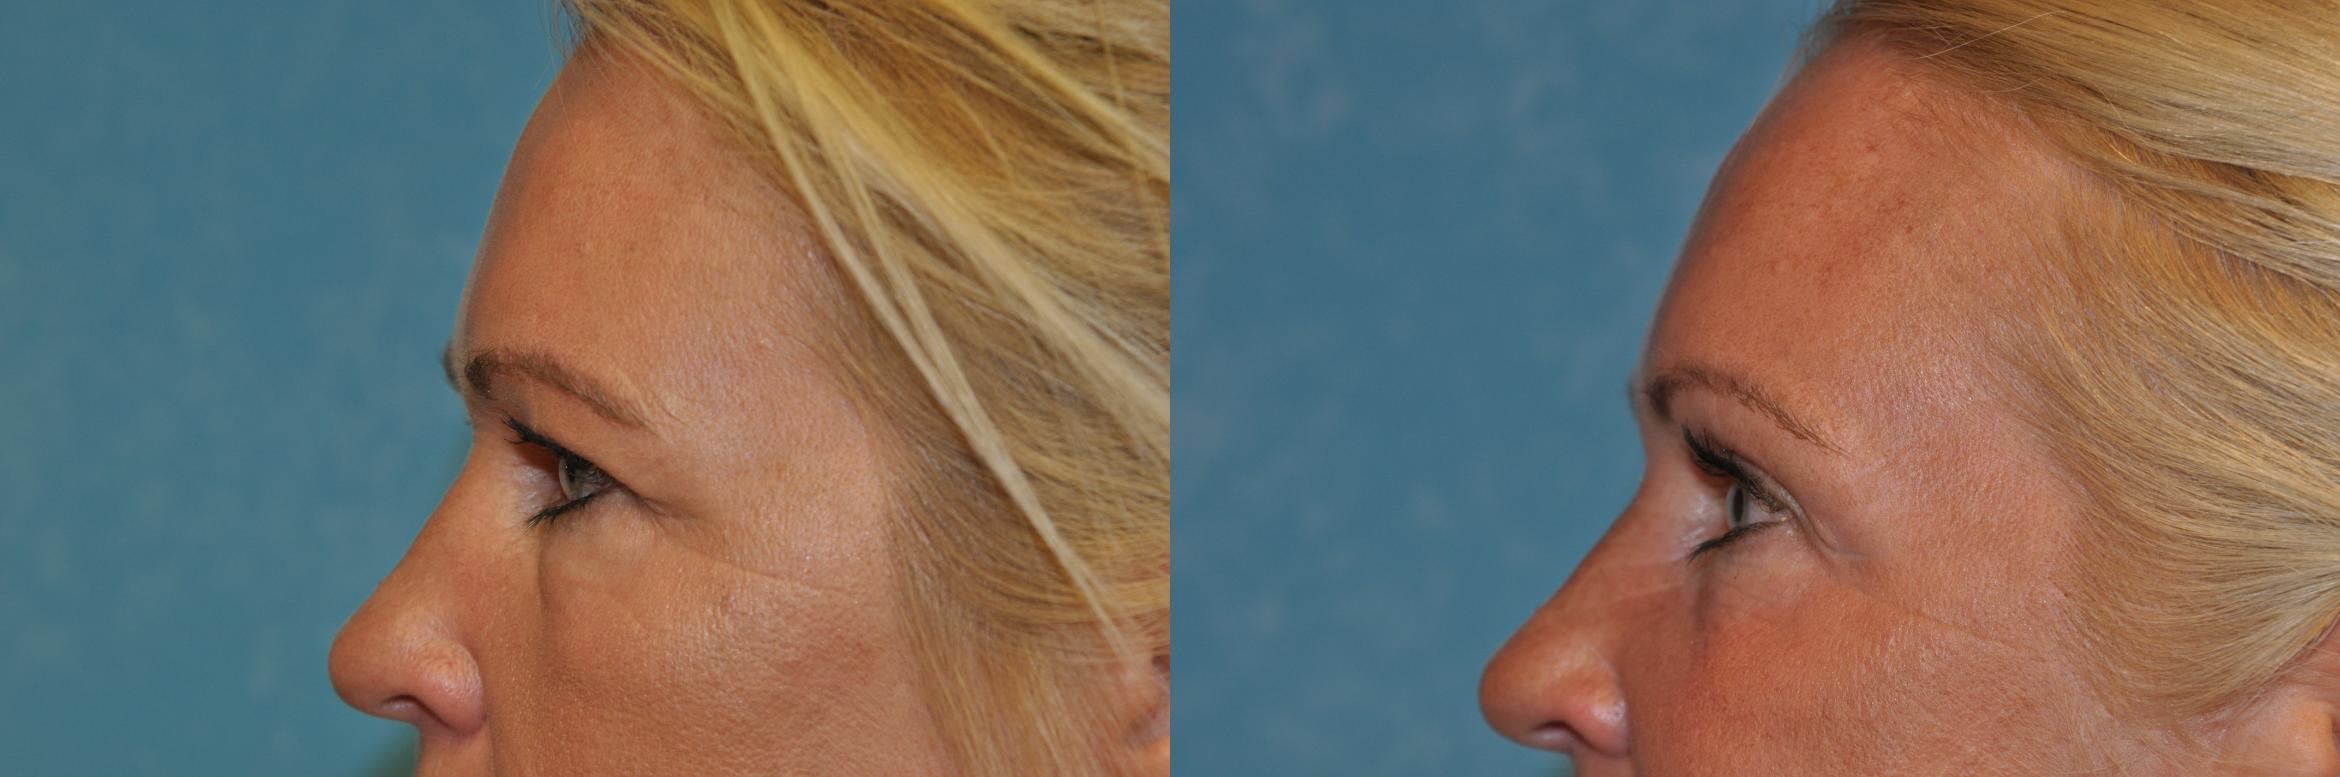 Eyelid Lift Before & After Photo | Toledo, Ohio | Dr. Craig Colville